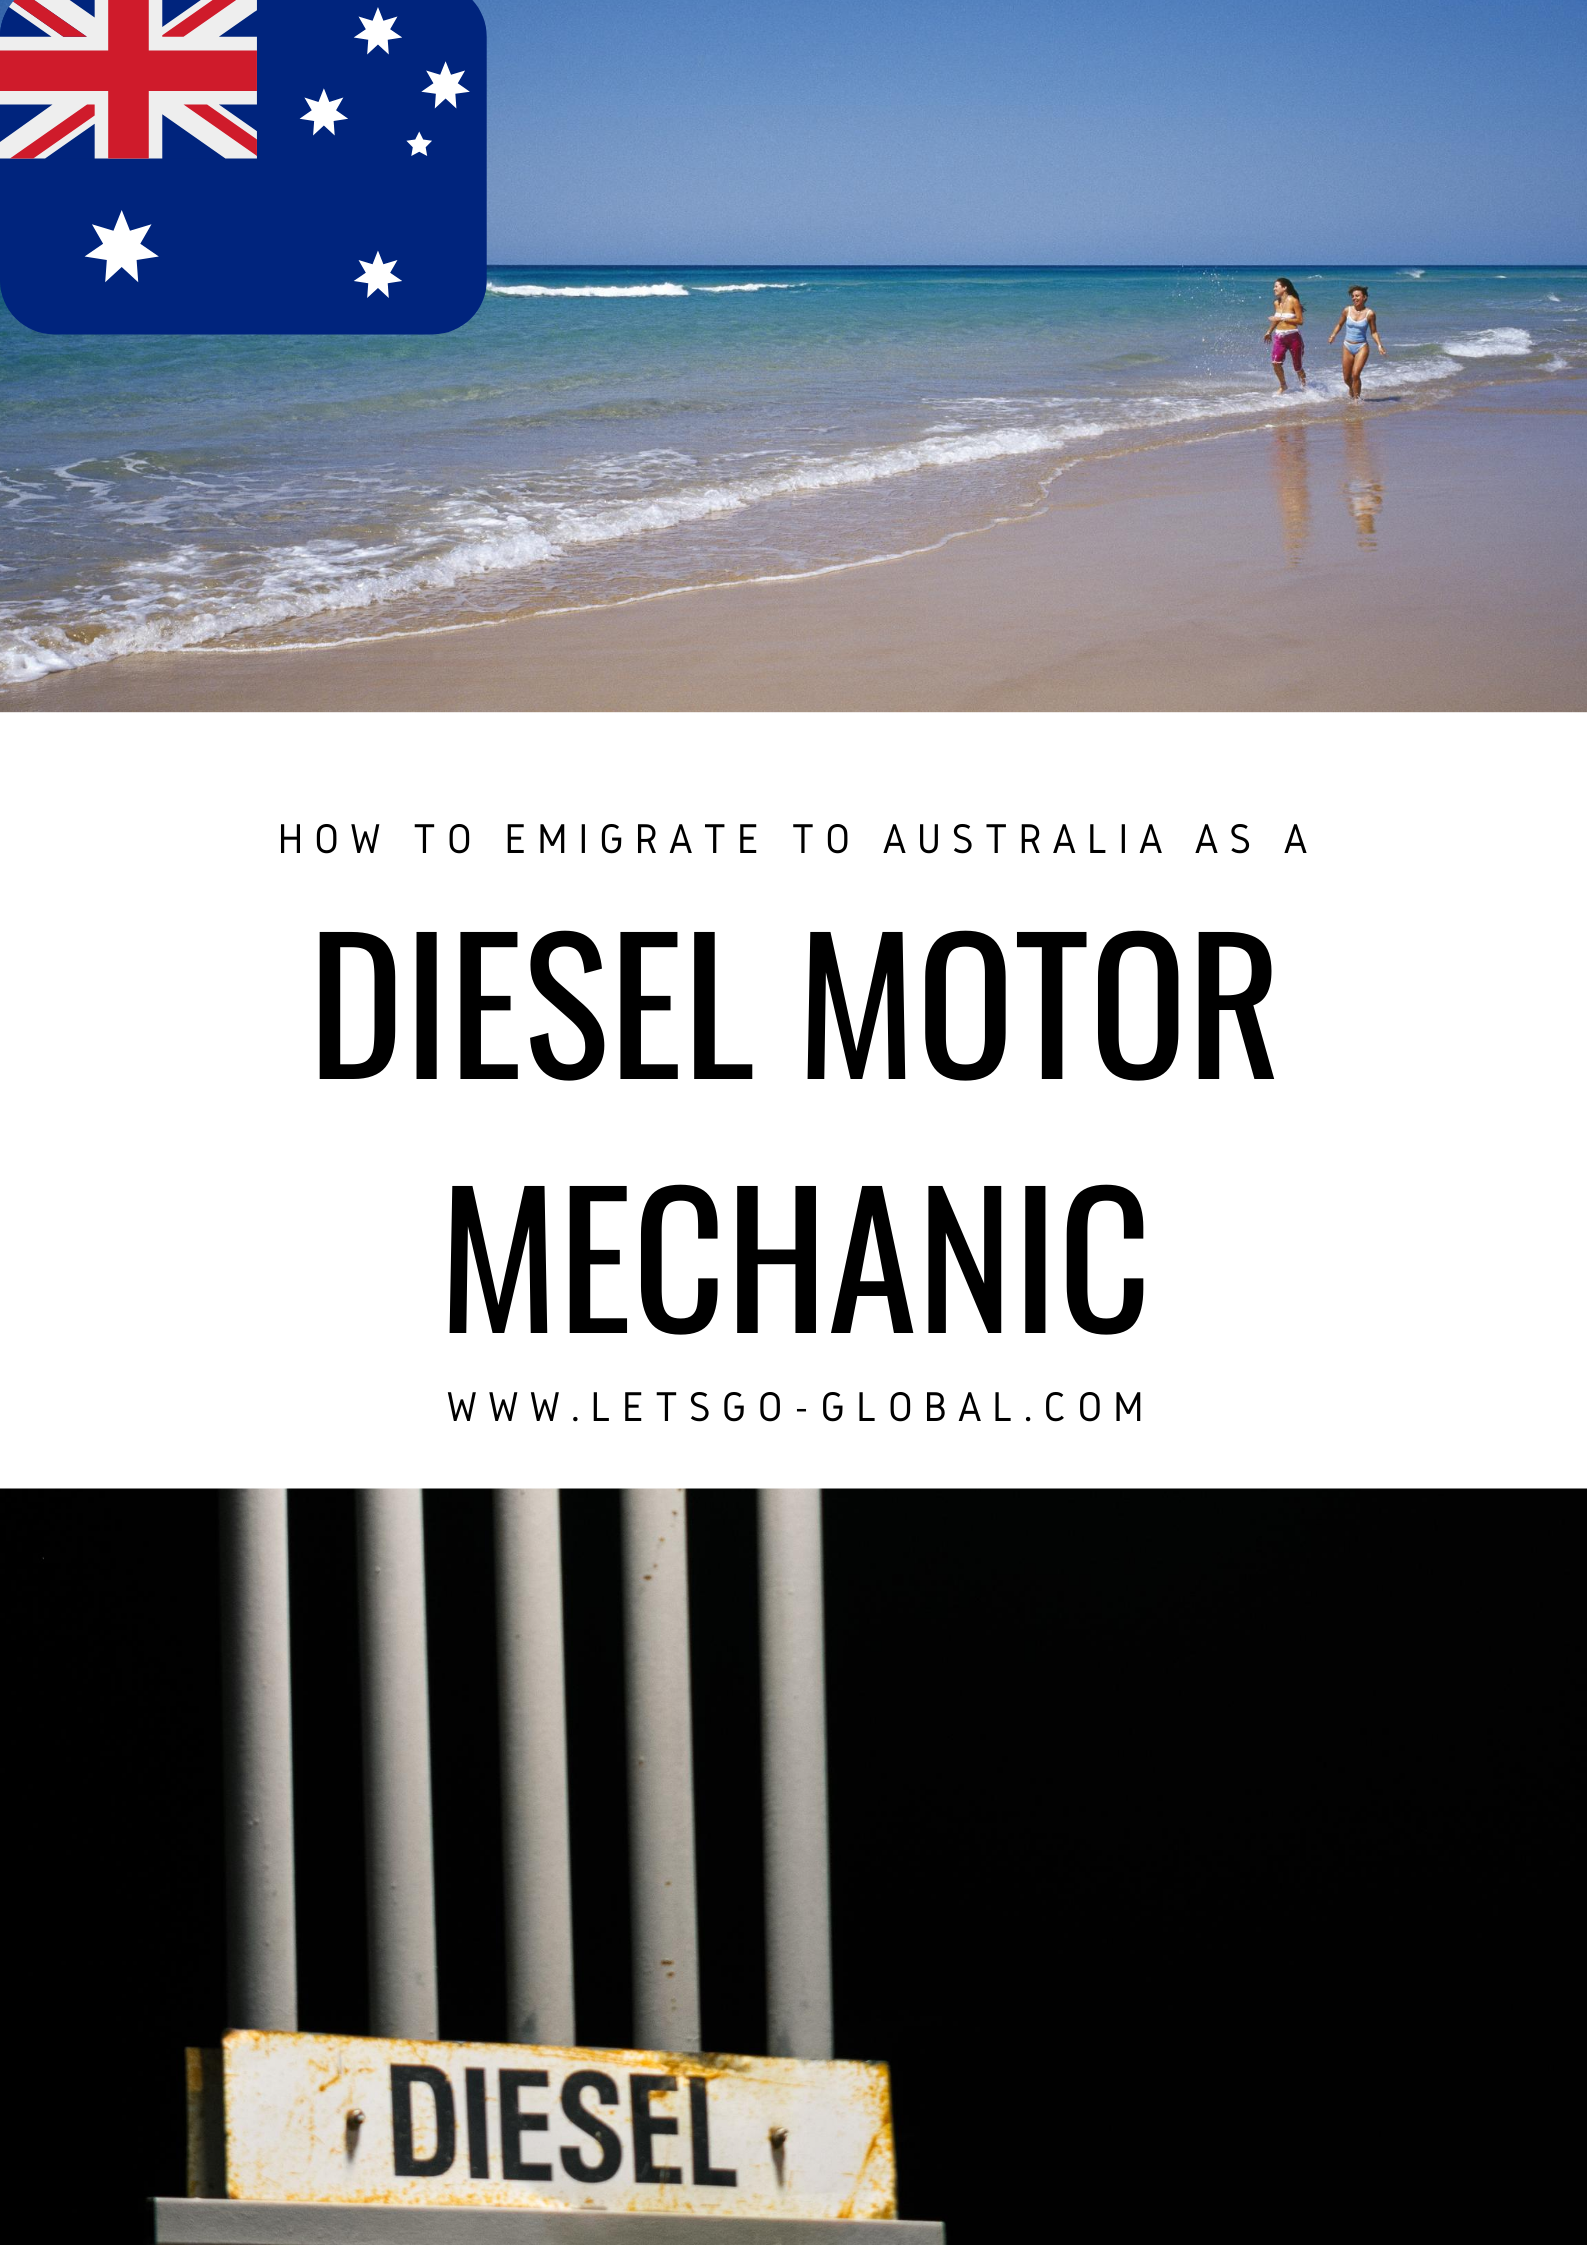 Migrate to Australia as a Diesel Motor Mechanic